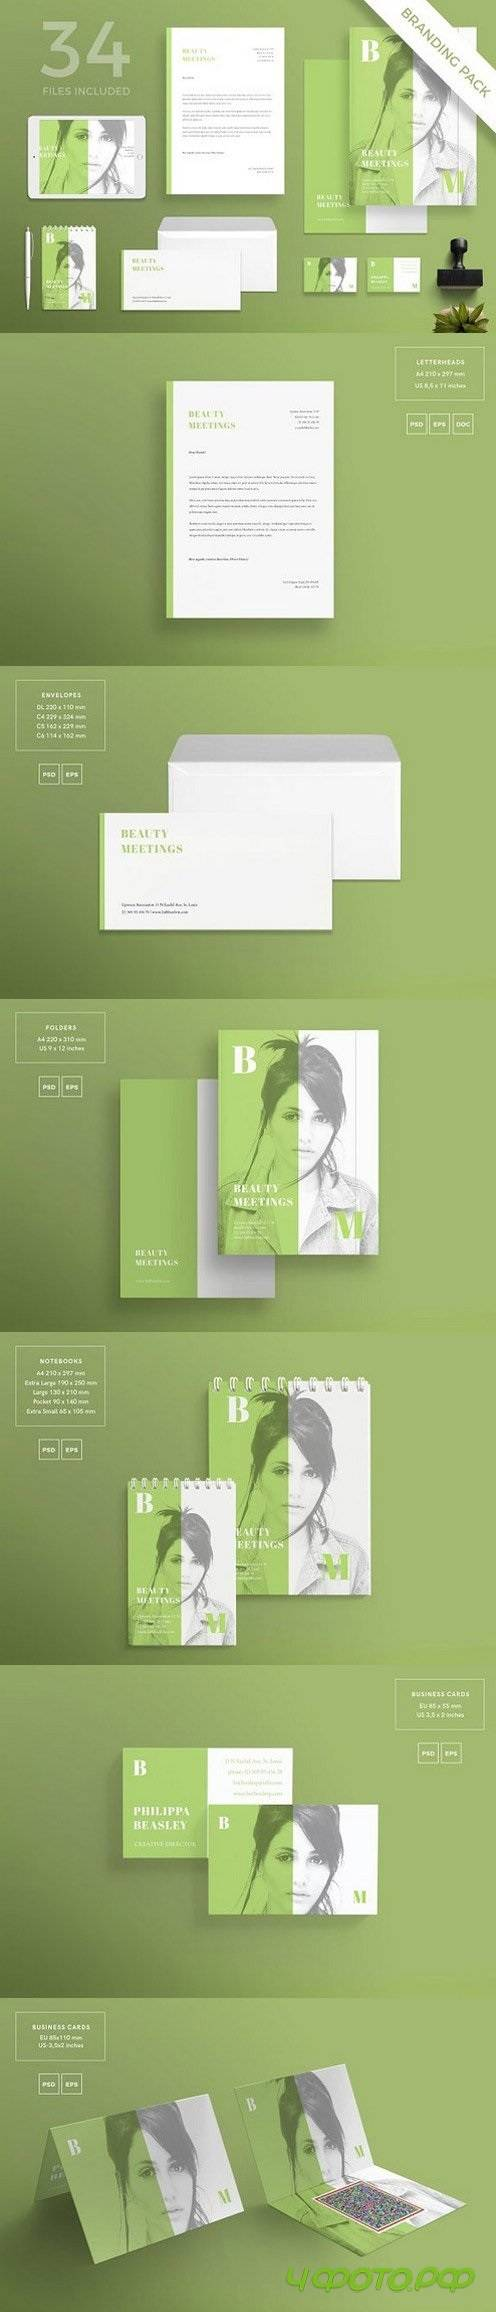 Branding Pack | Beauty Meetings 1519647